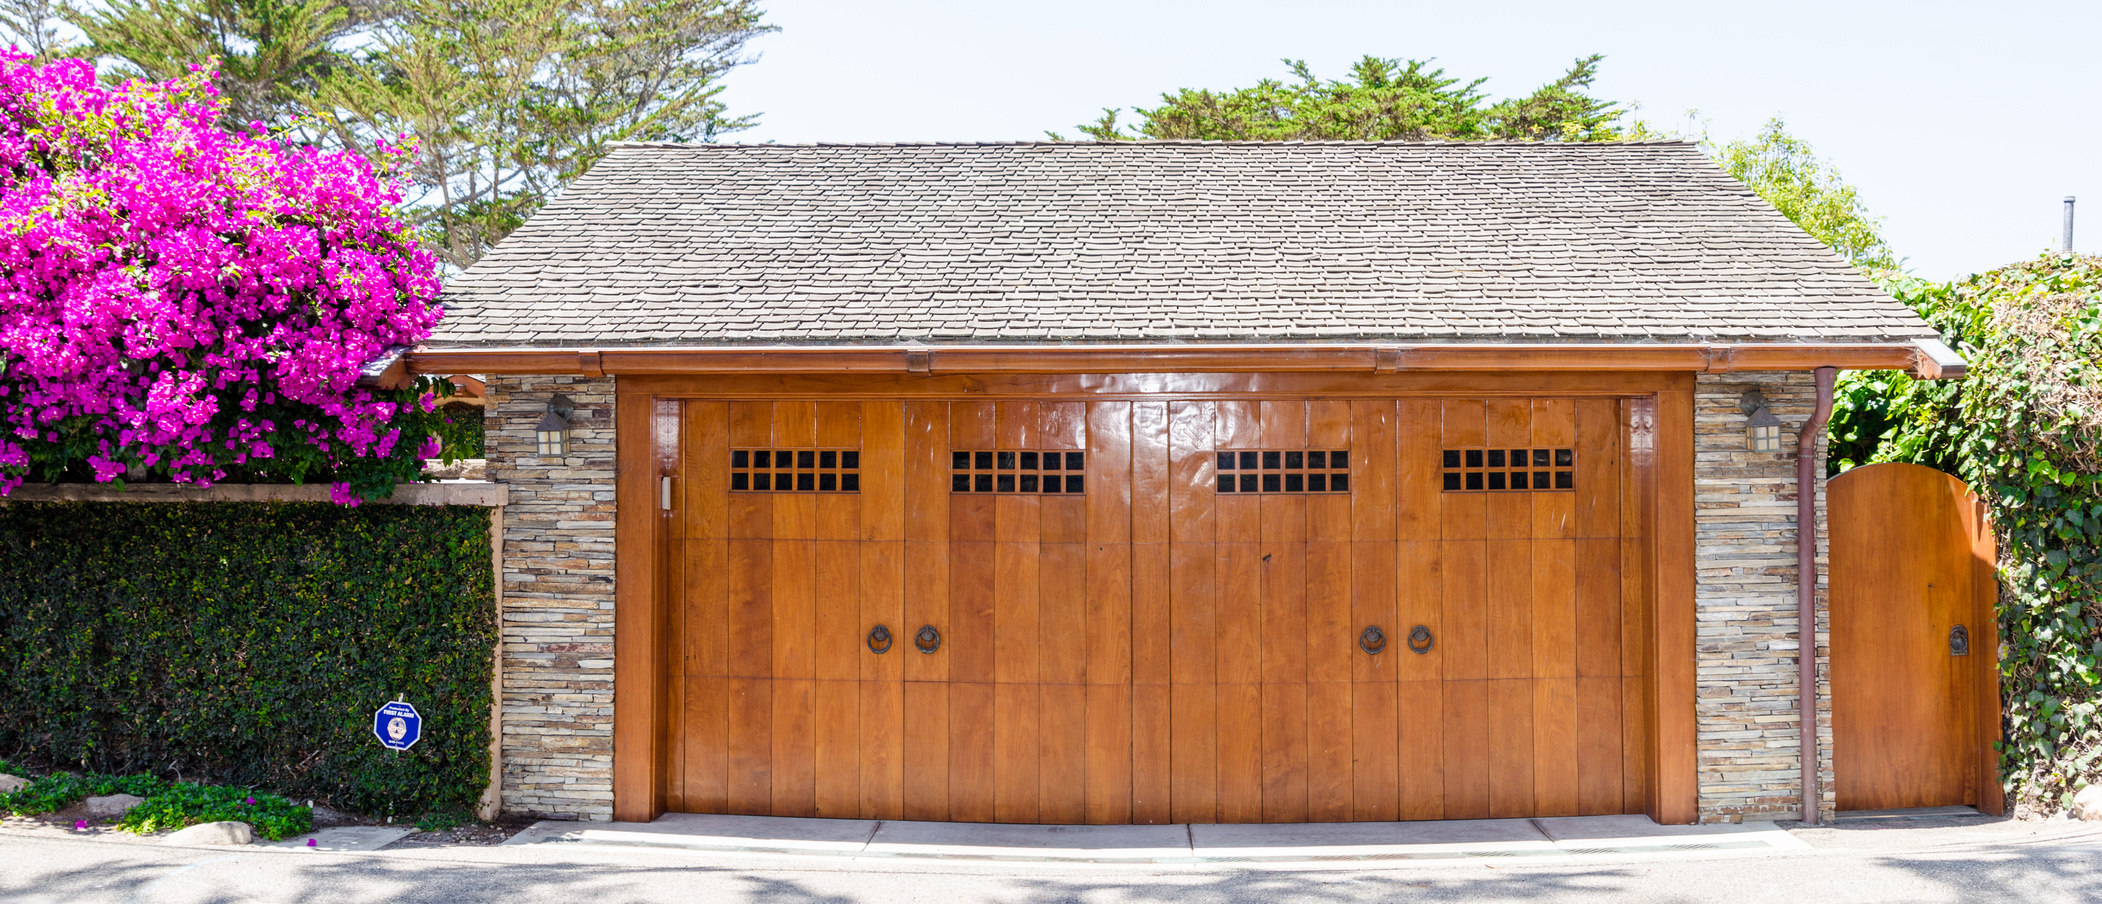 Keeping your garage cool as weather warms up a garage doors for Garage door repair roy utah